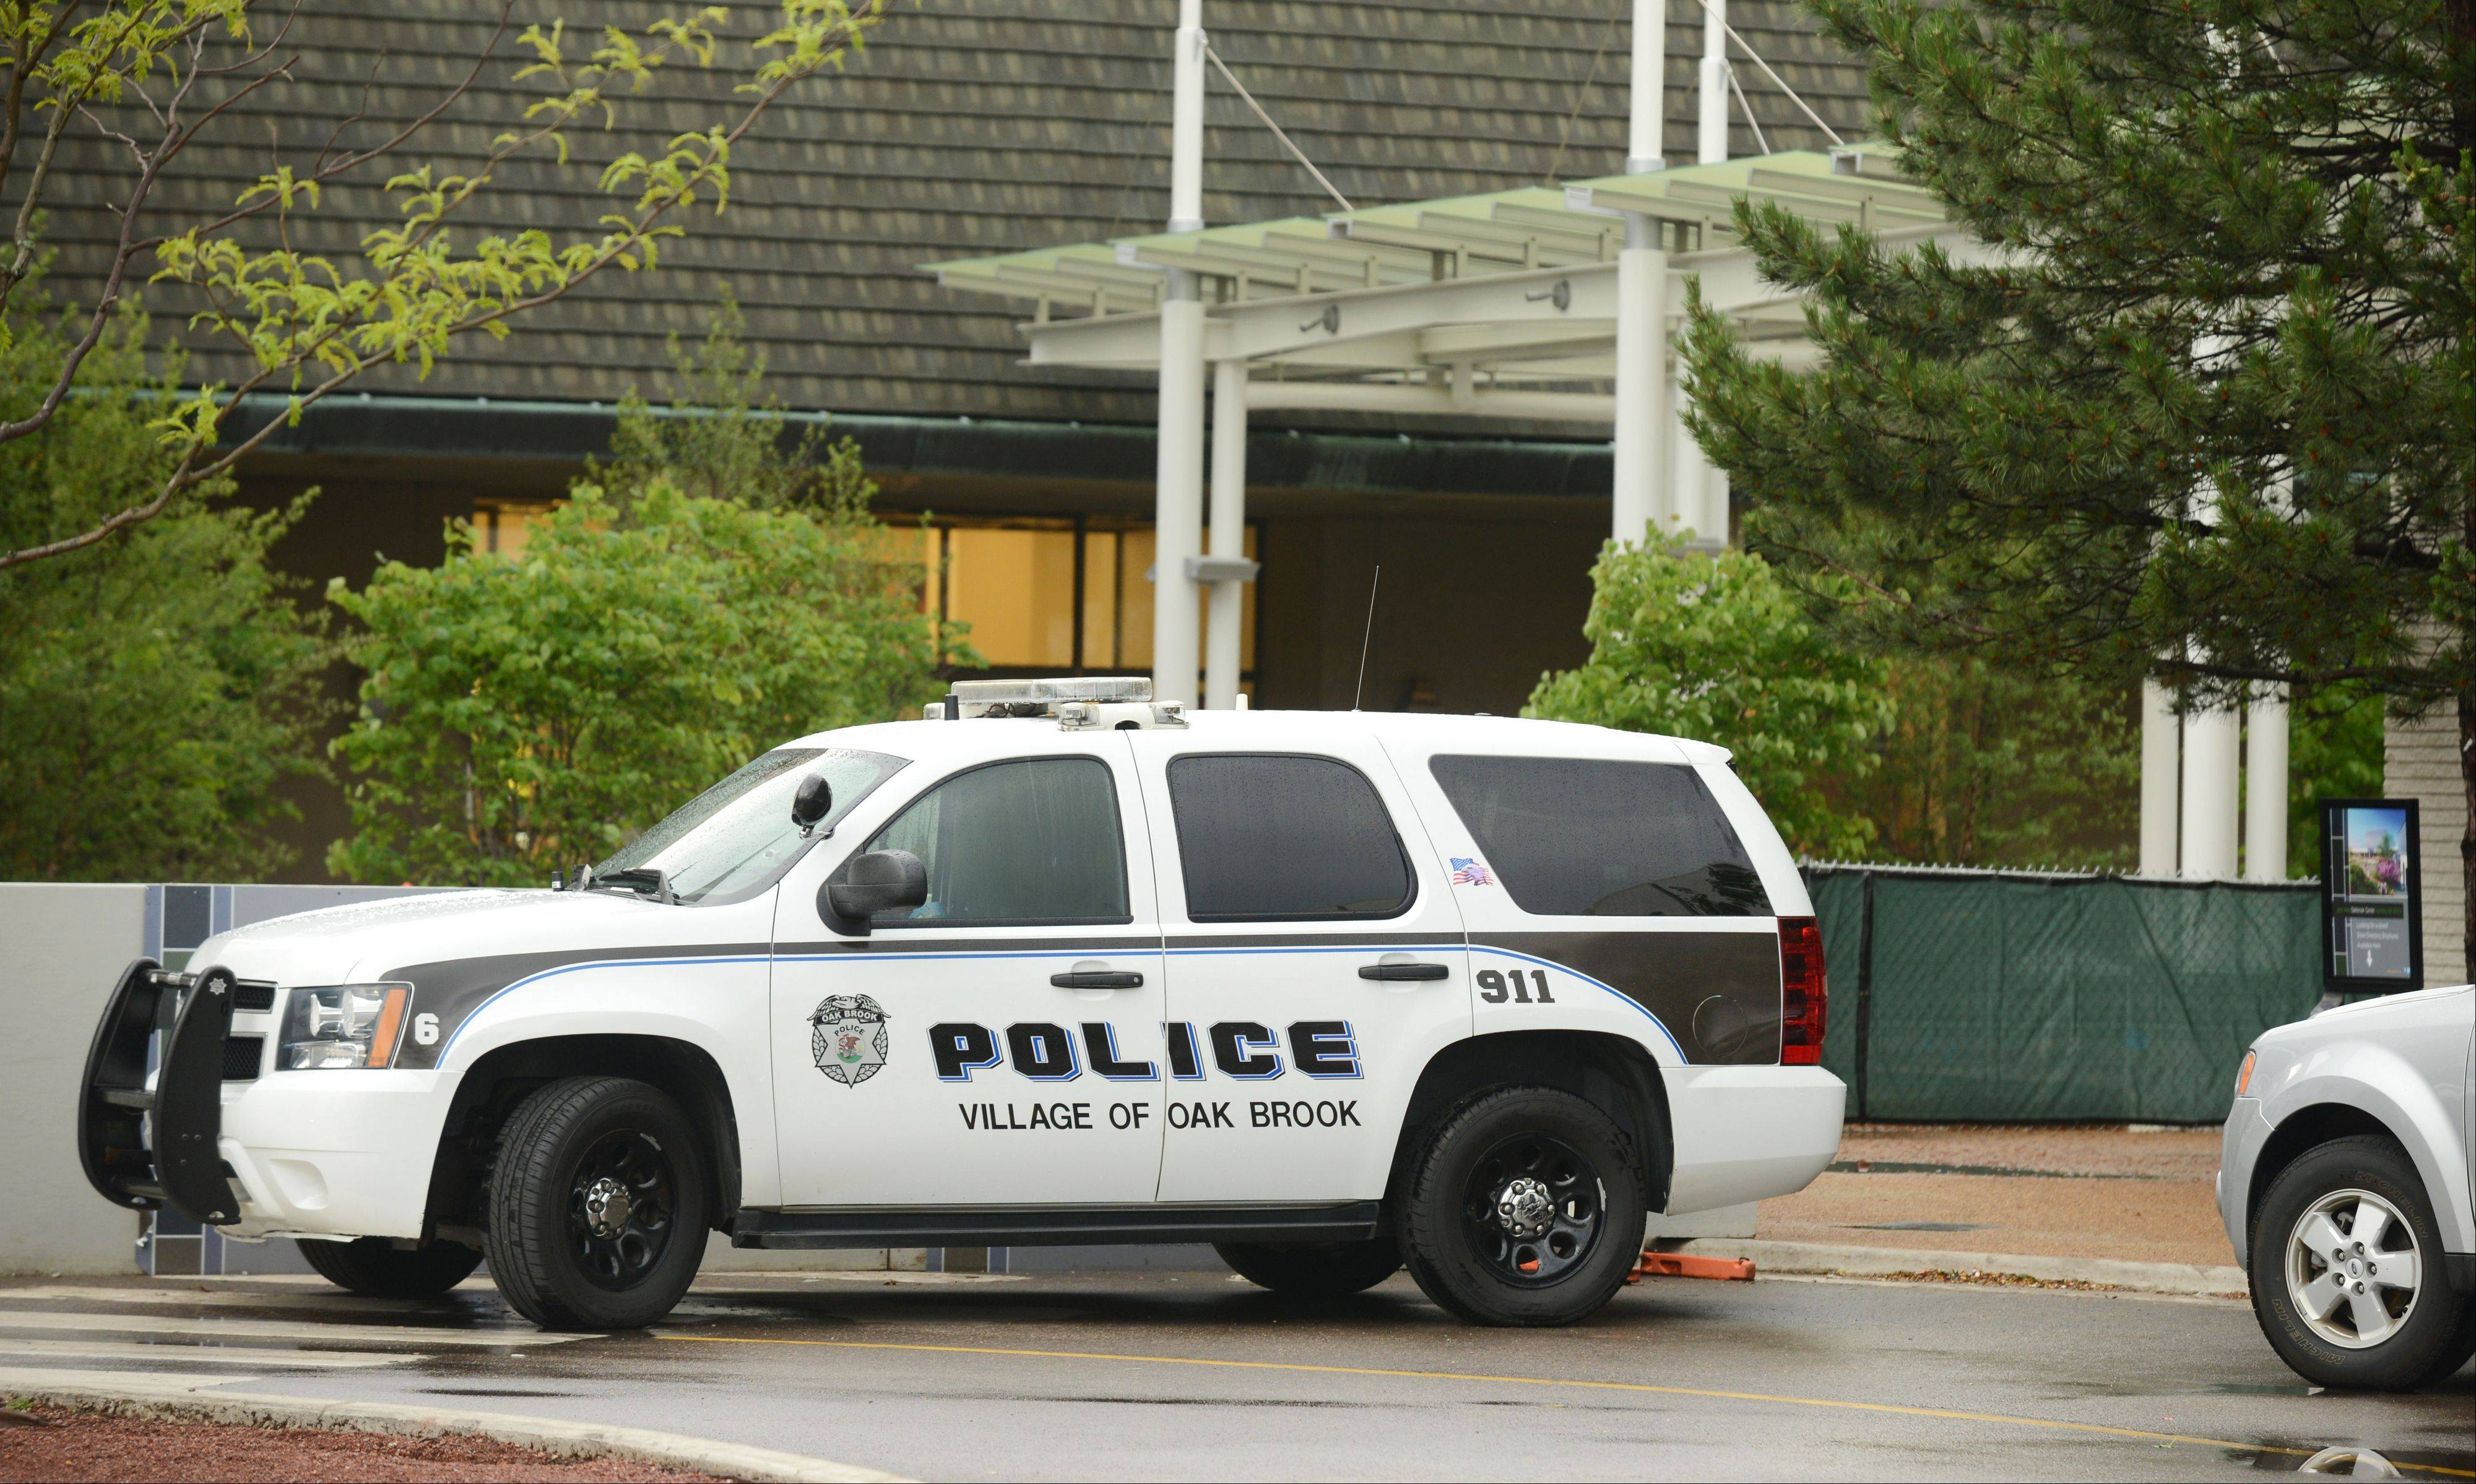 Oak Brook police responded to a shooting Sunday afternoon during an attempted robbery of a jewelry store at Oakbrook Center mall. Police said a robbery suspects was shot in the abdomen by a security guard while two other suspects escaped.